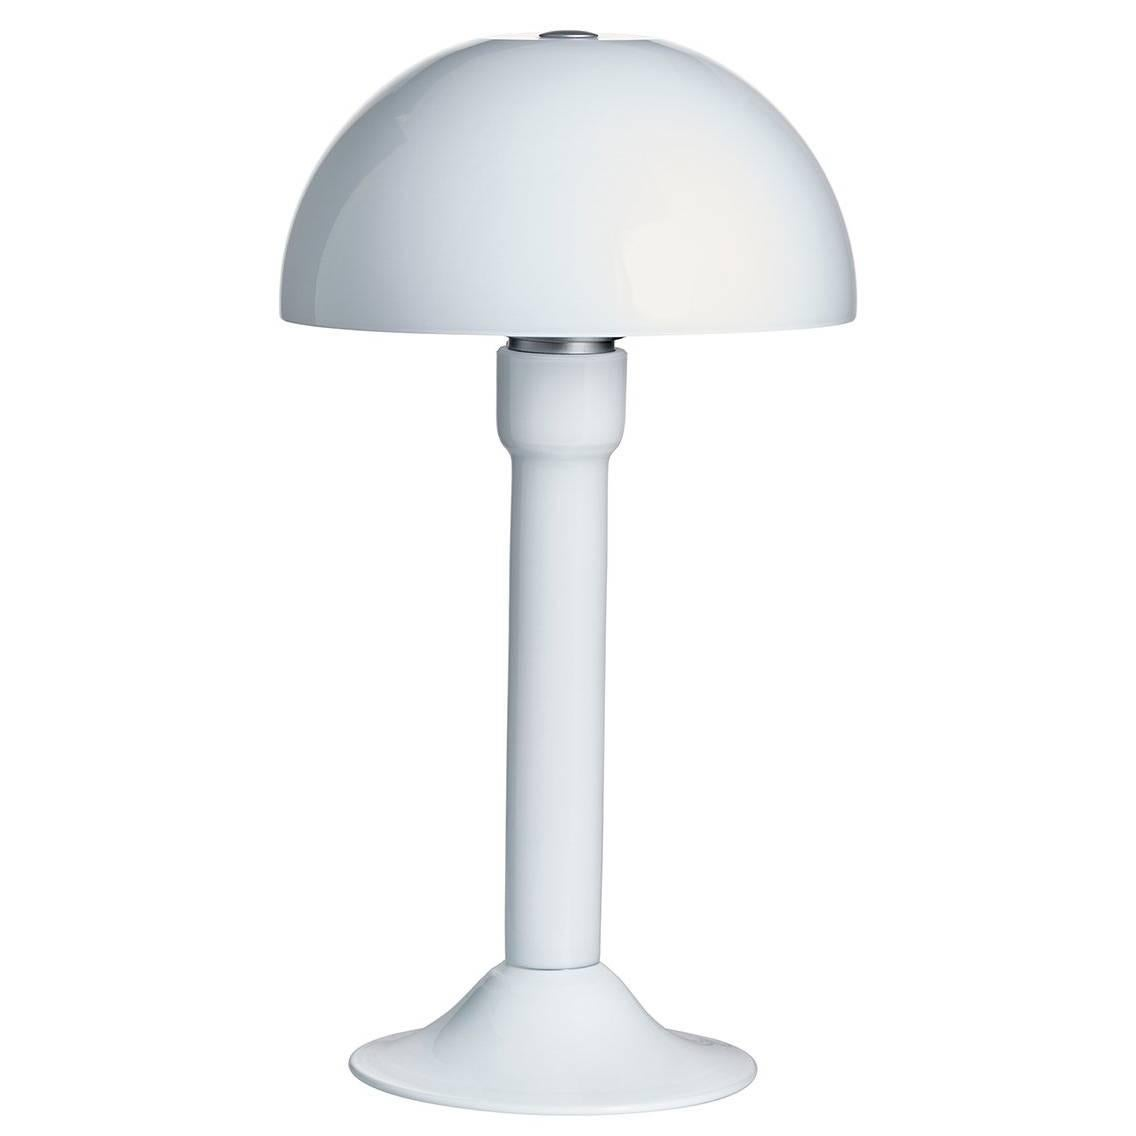 Good Cupola Carlo Moretti Contemporary Mouth Blown Murano Milk Glass Table Lamp